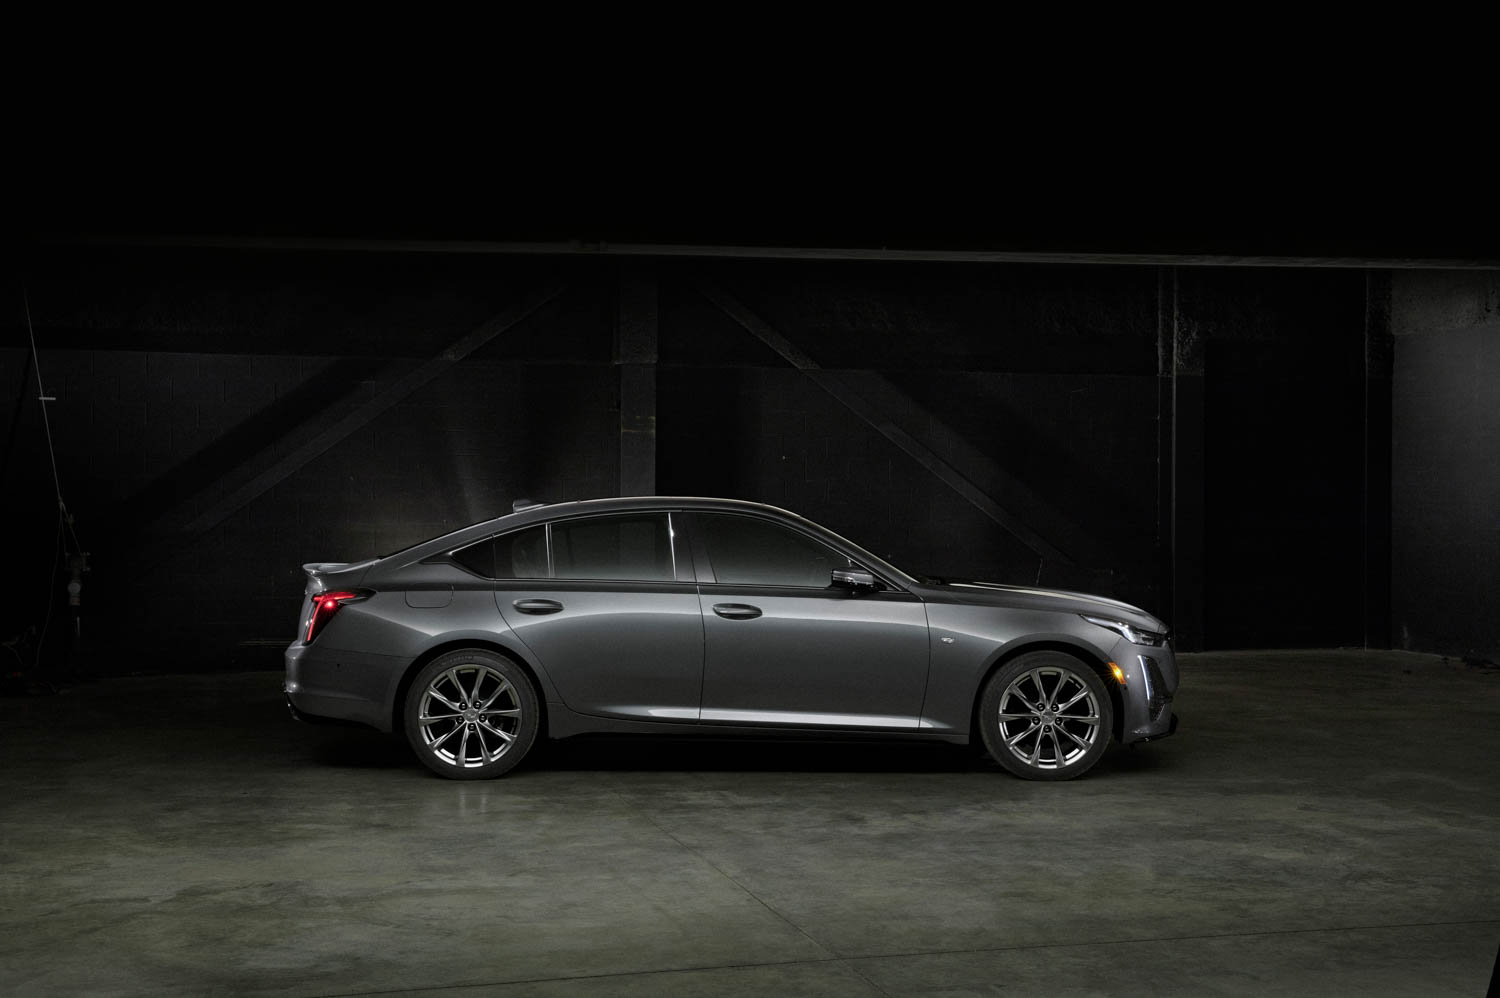 2020 Cadillac CT5 Sport side profile